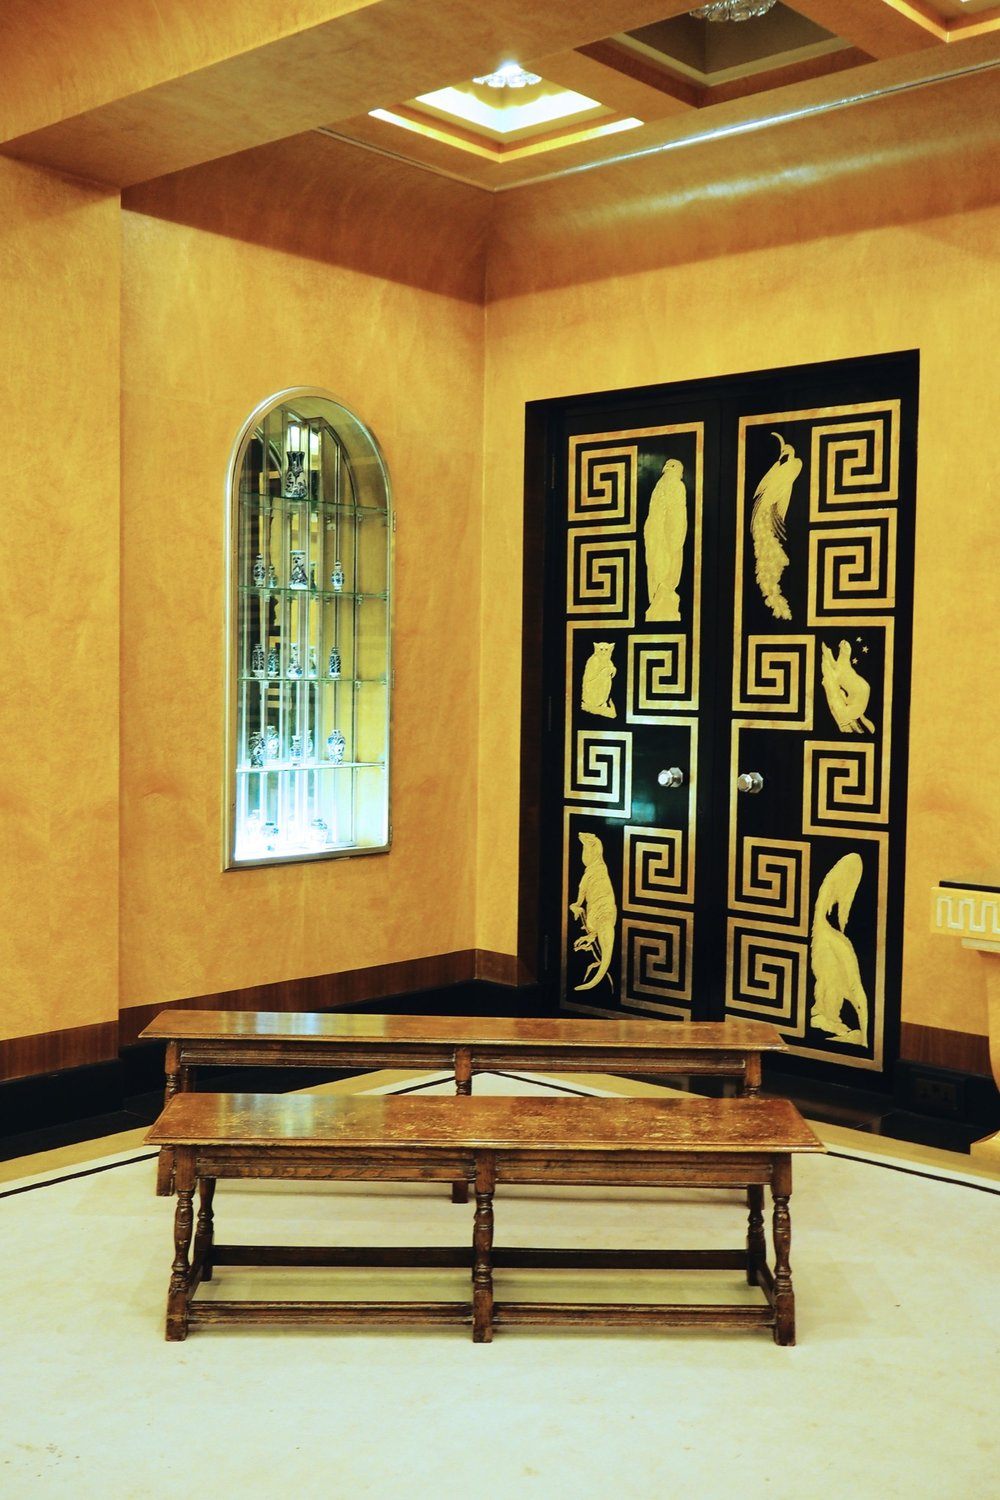 a lesson in art deco interiors at eltham palace —